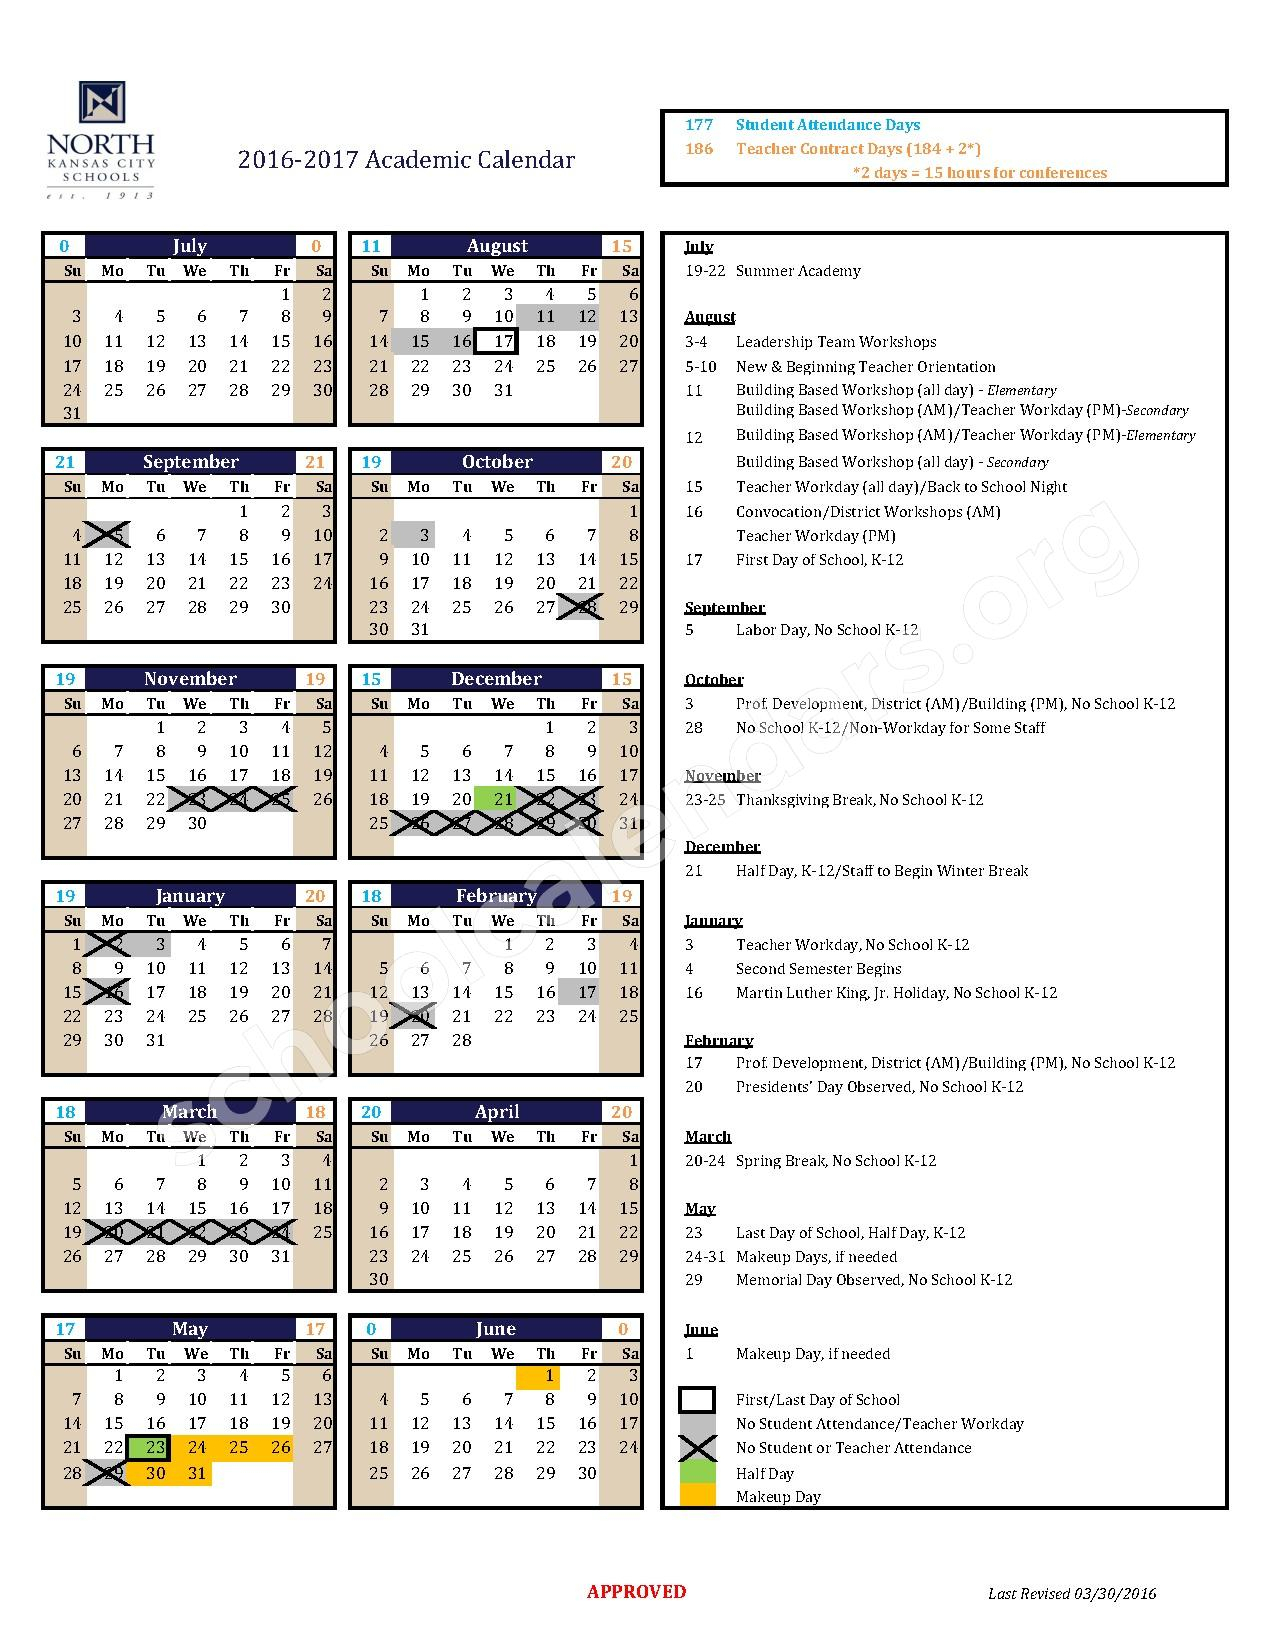 Delaware State University Calendar 2021 | Printable With Univ Of Ri Acacemic Calendar